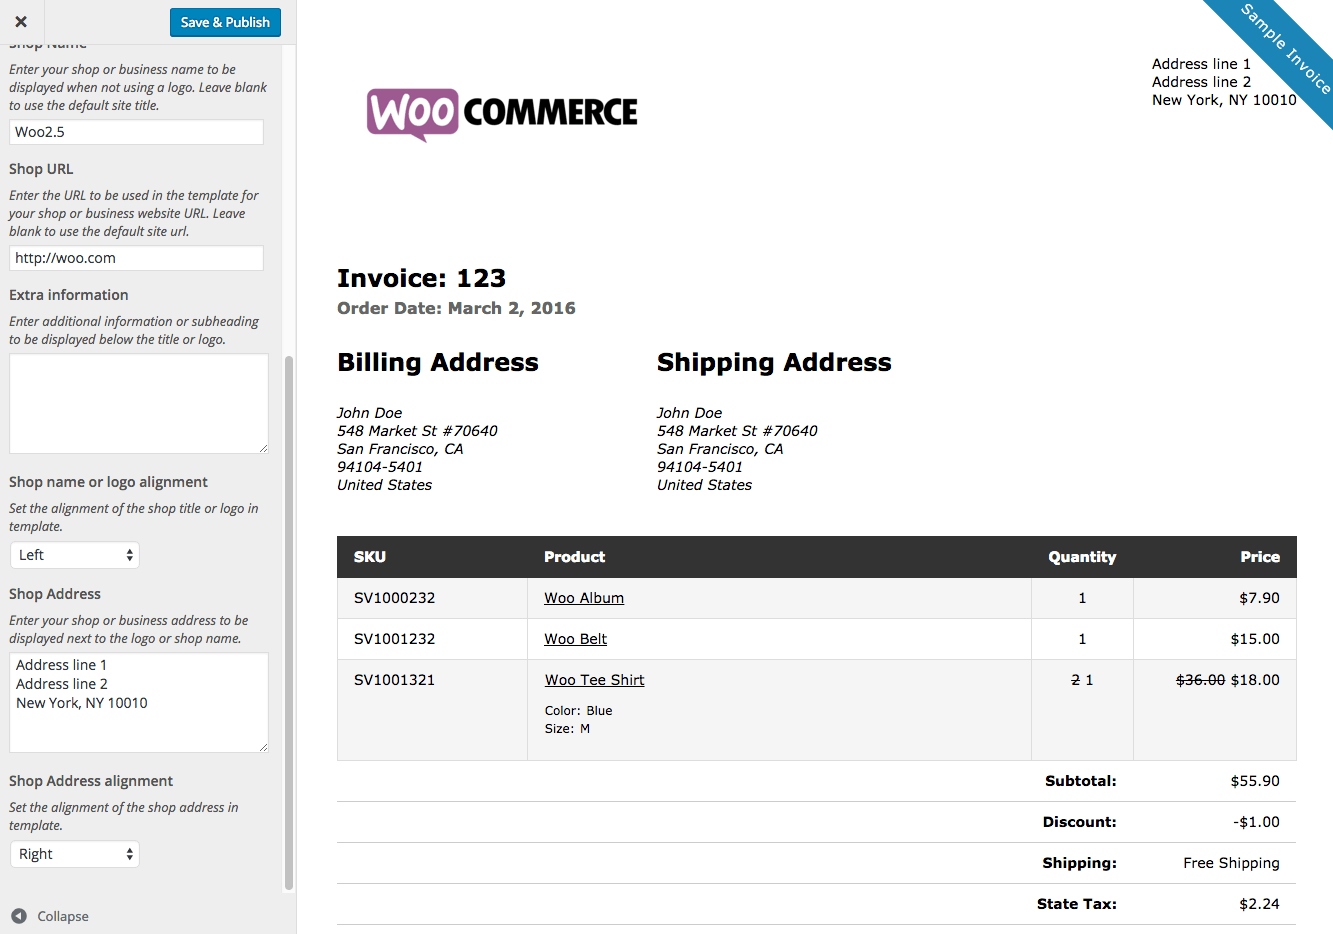 Shopdesignsus  Marvelous Woocommerce Print Invoices Amp Packing Lists  Woocommerce Docs With Engaging Woocommerce Print Invoices  Packing Lists Customizer With Appealing Canadian Customs Invoice Instructions Also Invoice Print In Addition Printable Blank Invoice Template And Commercial Invoice Format As Well As Invoice Payment Terms Example Additionally Invoice Shipping From Docswoocommercecom With Shopdesignsus  Engaging Woocommerce Print Invoices Amp Packing Lists  Woocommerce Docs With Appealing Woocommerce Print Invoices  Packing Lists Customizer And Marvelous Canadian Customs Invoice Instructions Also Invoice Print In Addition Printable Blank Invoice Template From Docswoocommercecom